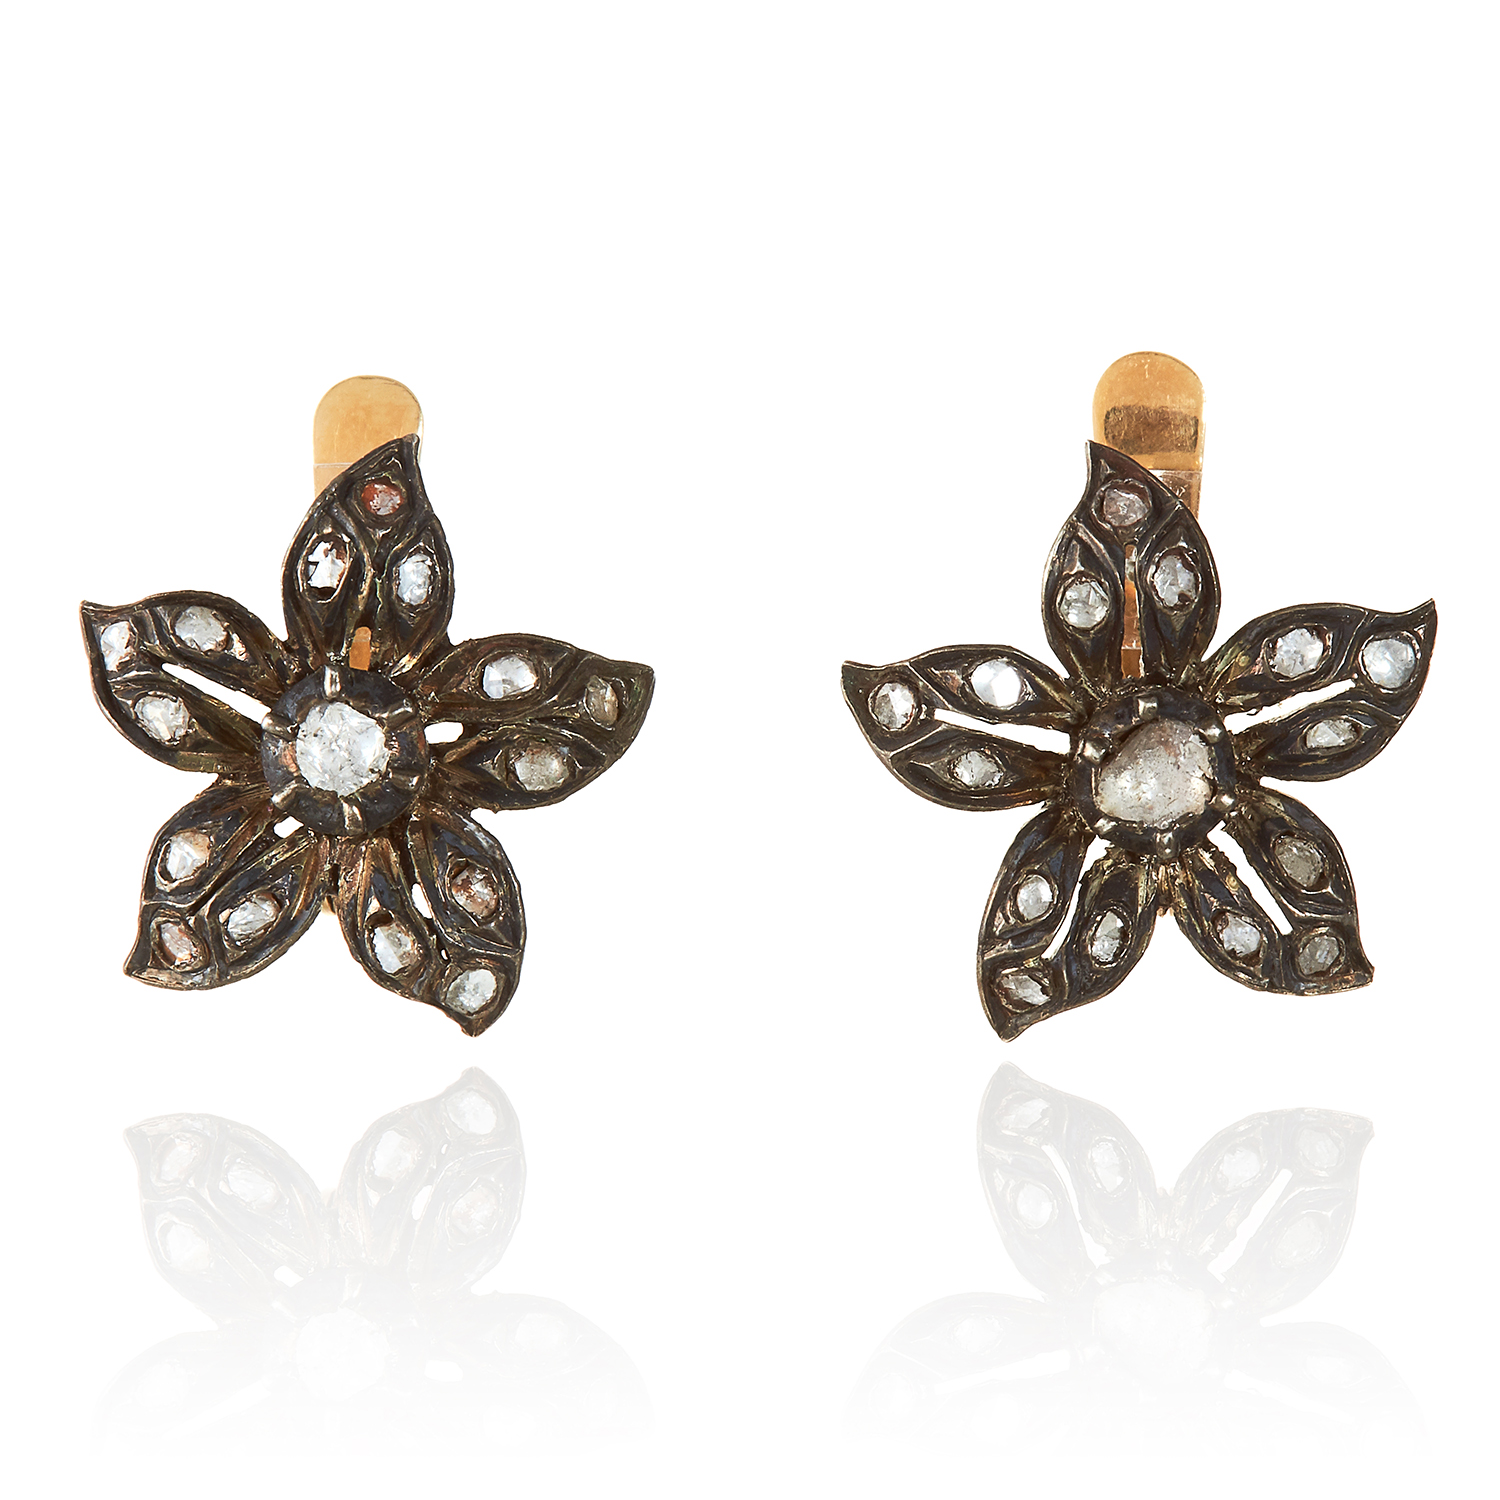 Los 337 - A PAIR OF ANTIQUE DIAMOND FLOWER EARRINGS in yellow gold and silver, unmarked, 1.9cm, 6.05g.